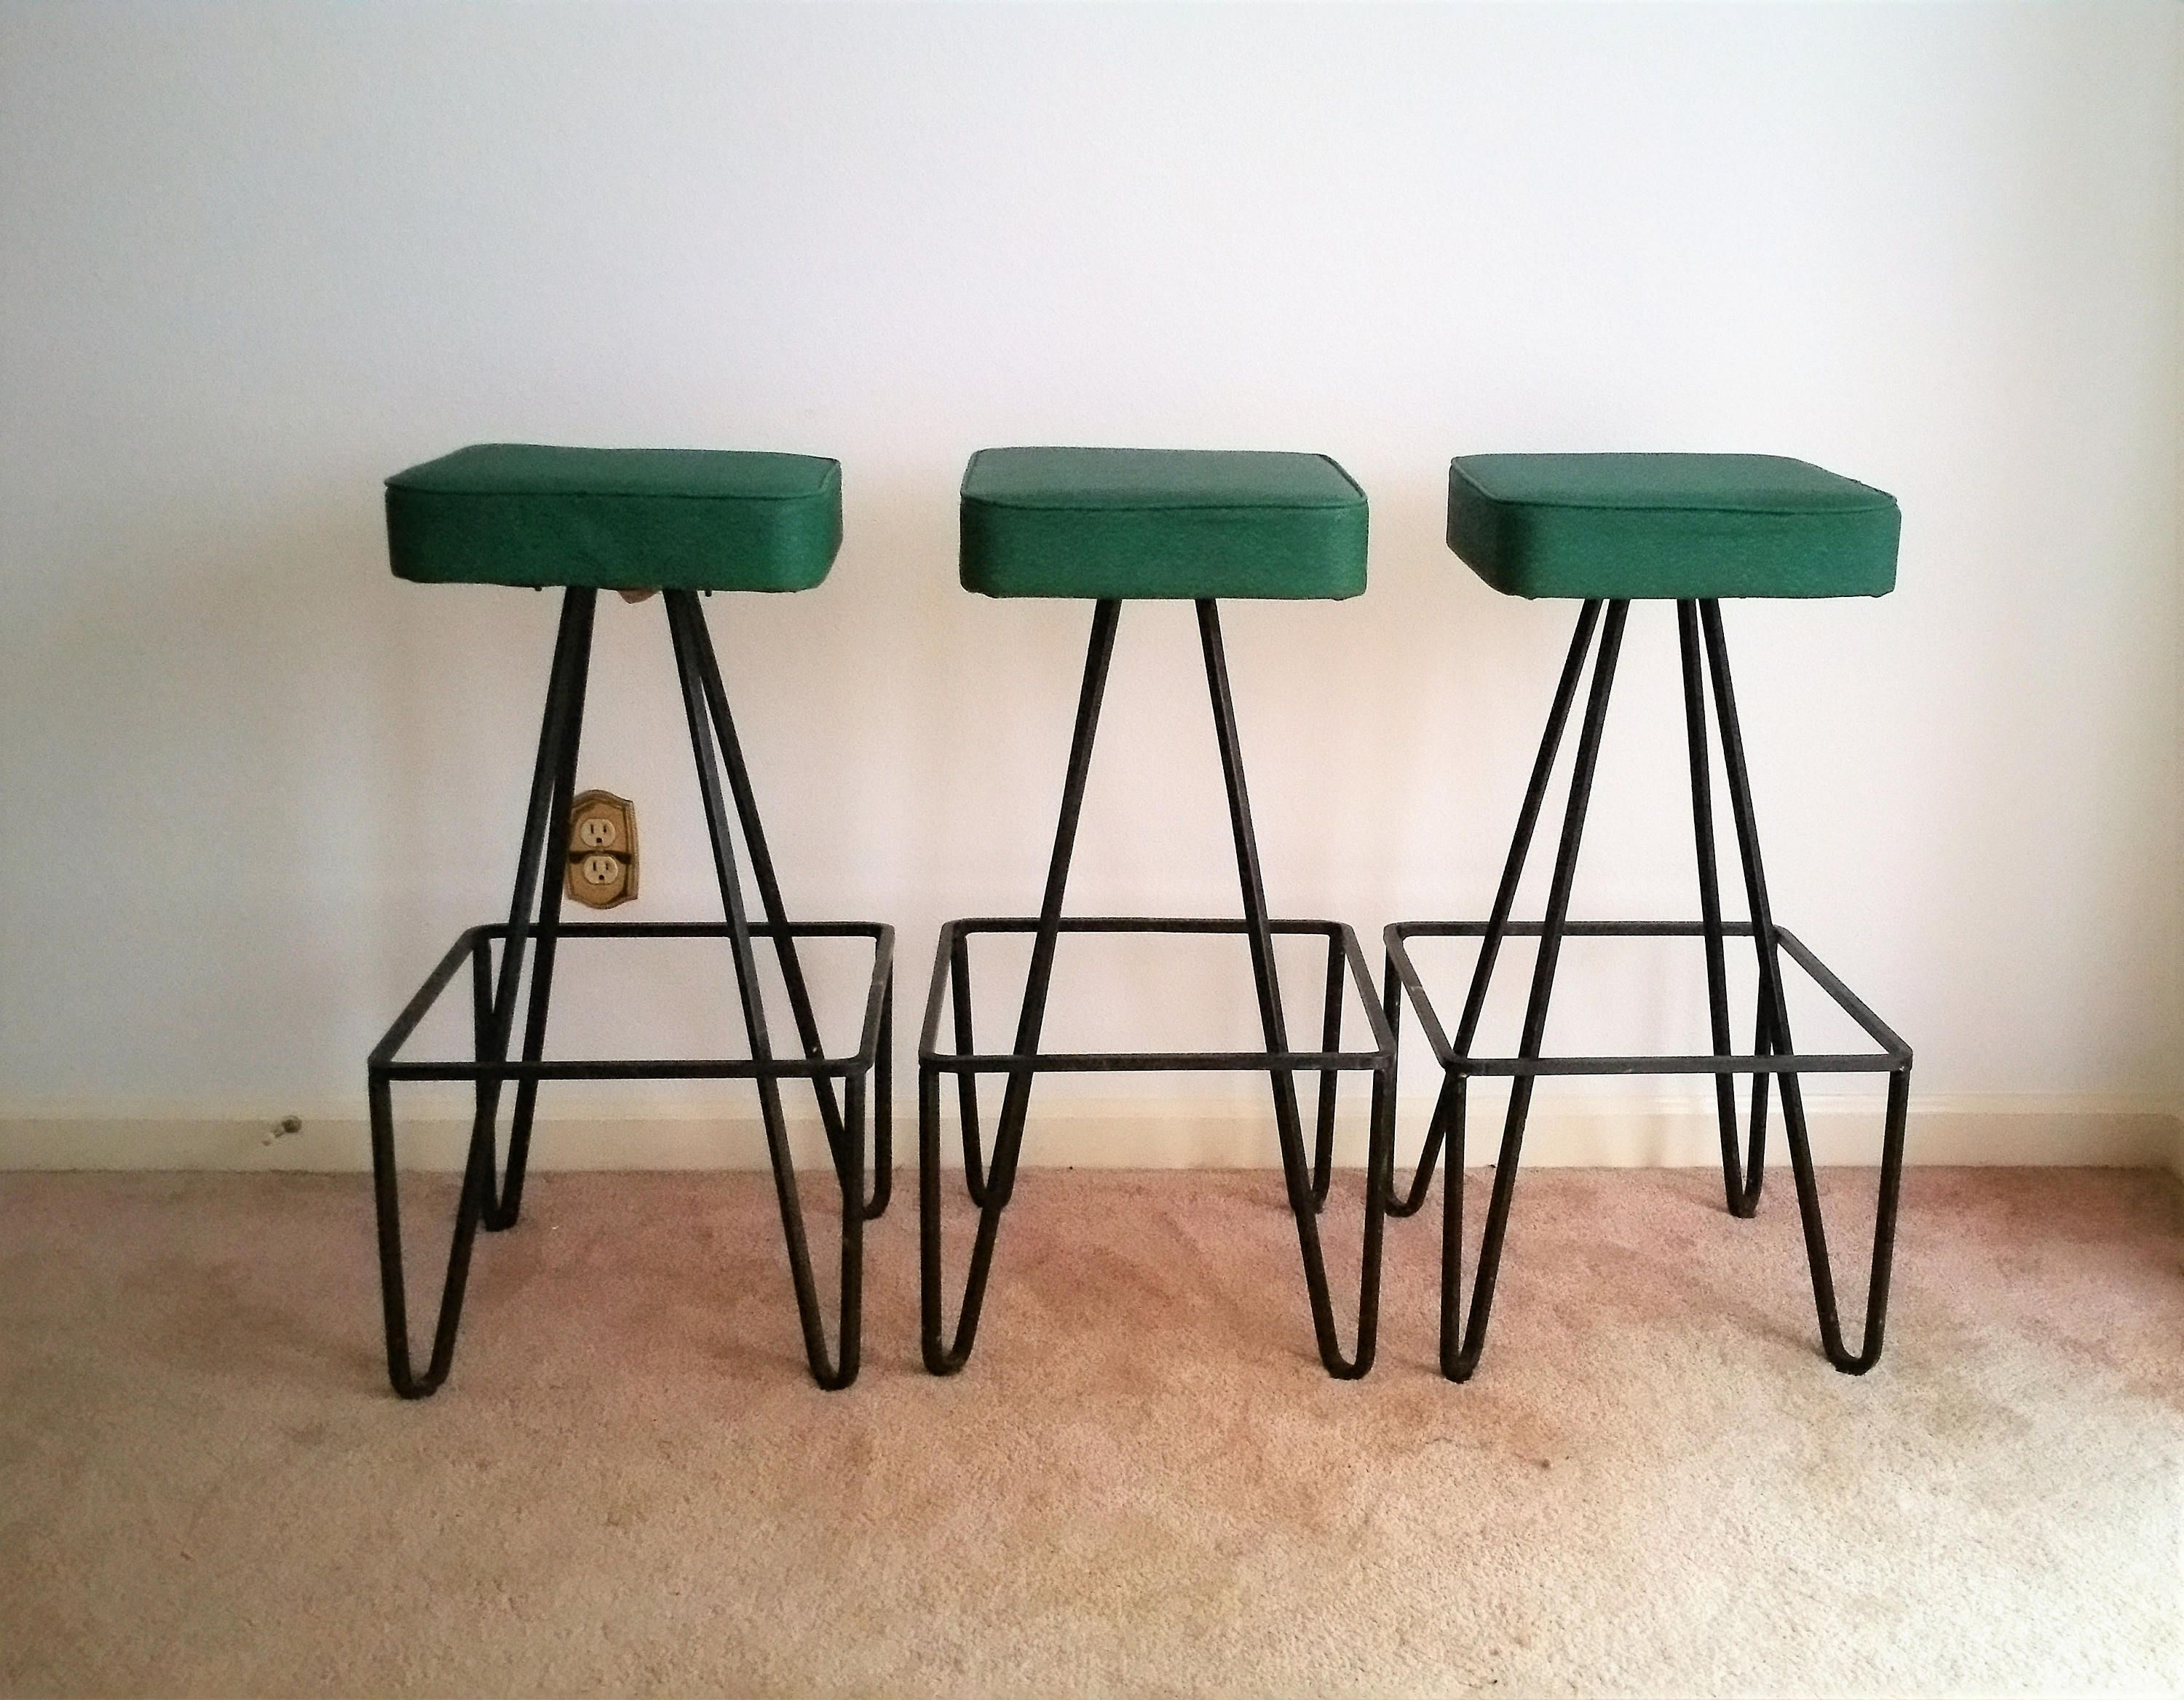 Marvelous Three Frederick Weinberg Cast Iron Bar Stools By Modernpicks Andrewgaddart Wooden Chair Designs For Living Room Andrewgaddartcom